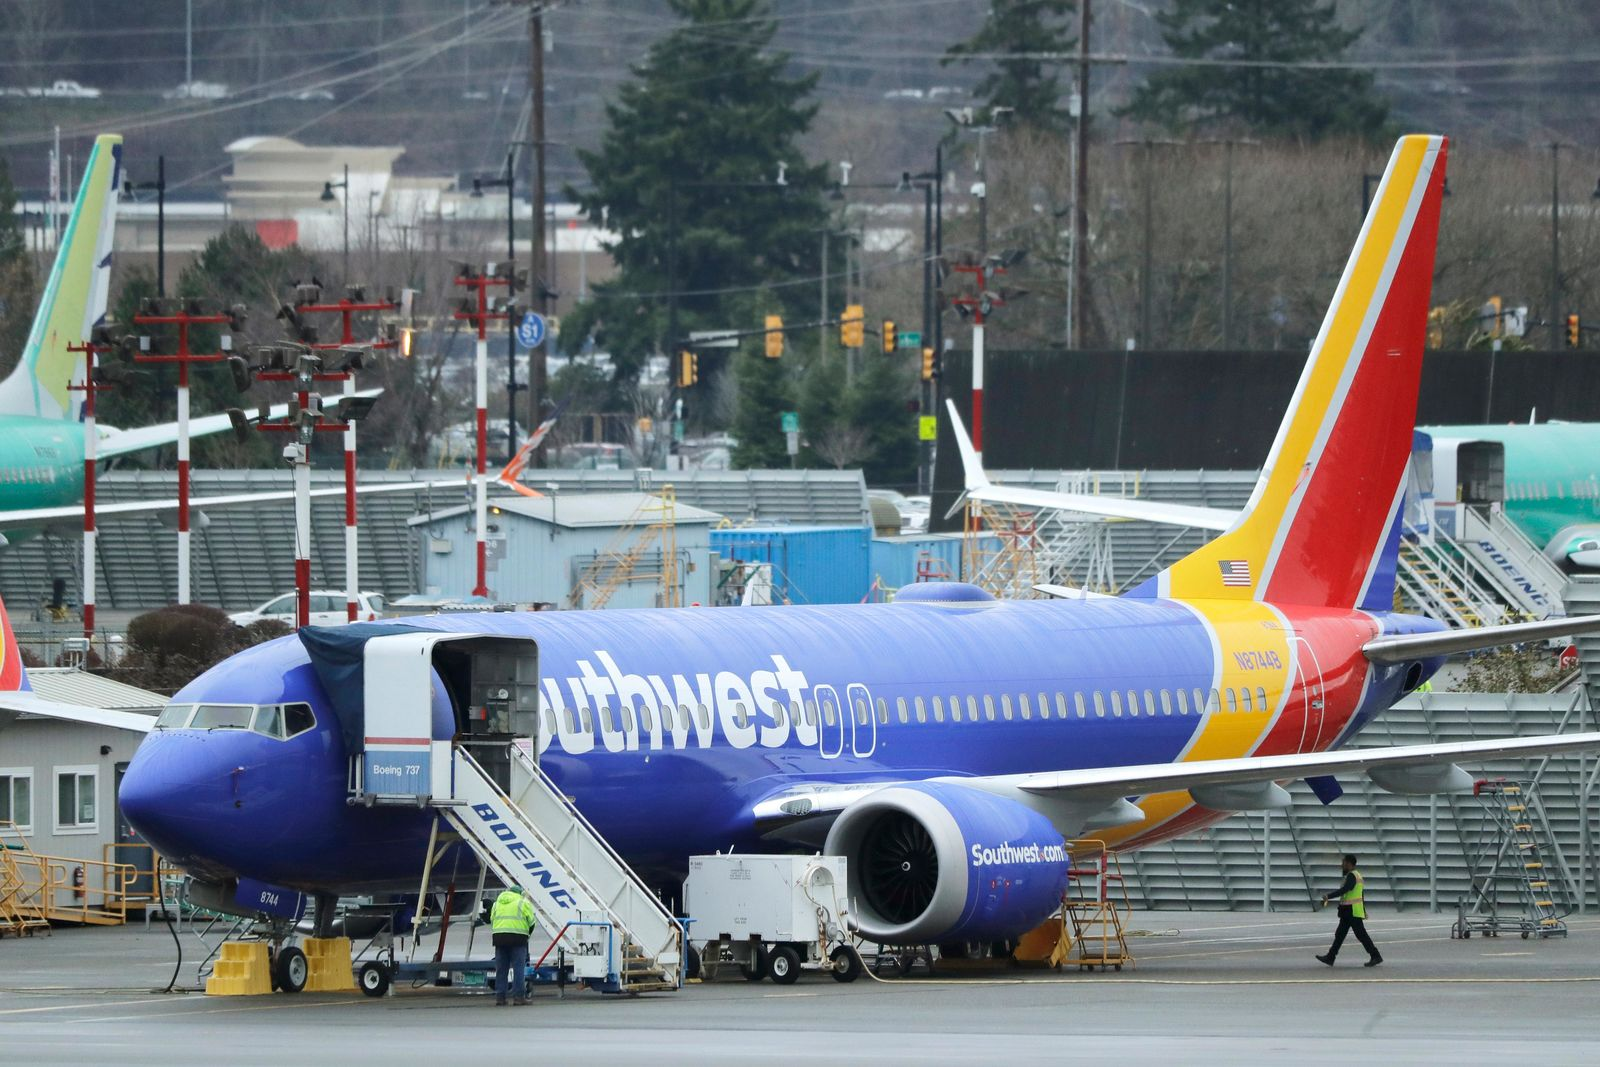 FILE - In this Dec. 11, 2019, file photo workers walk near a Southwest Airlines Boeing 737 Max airplane parked at Renton Municipal Airport in Renton, Wash. (AP Photo/Ted S. Warren, File)